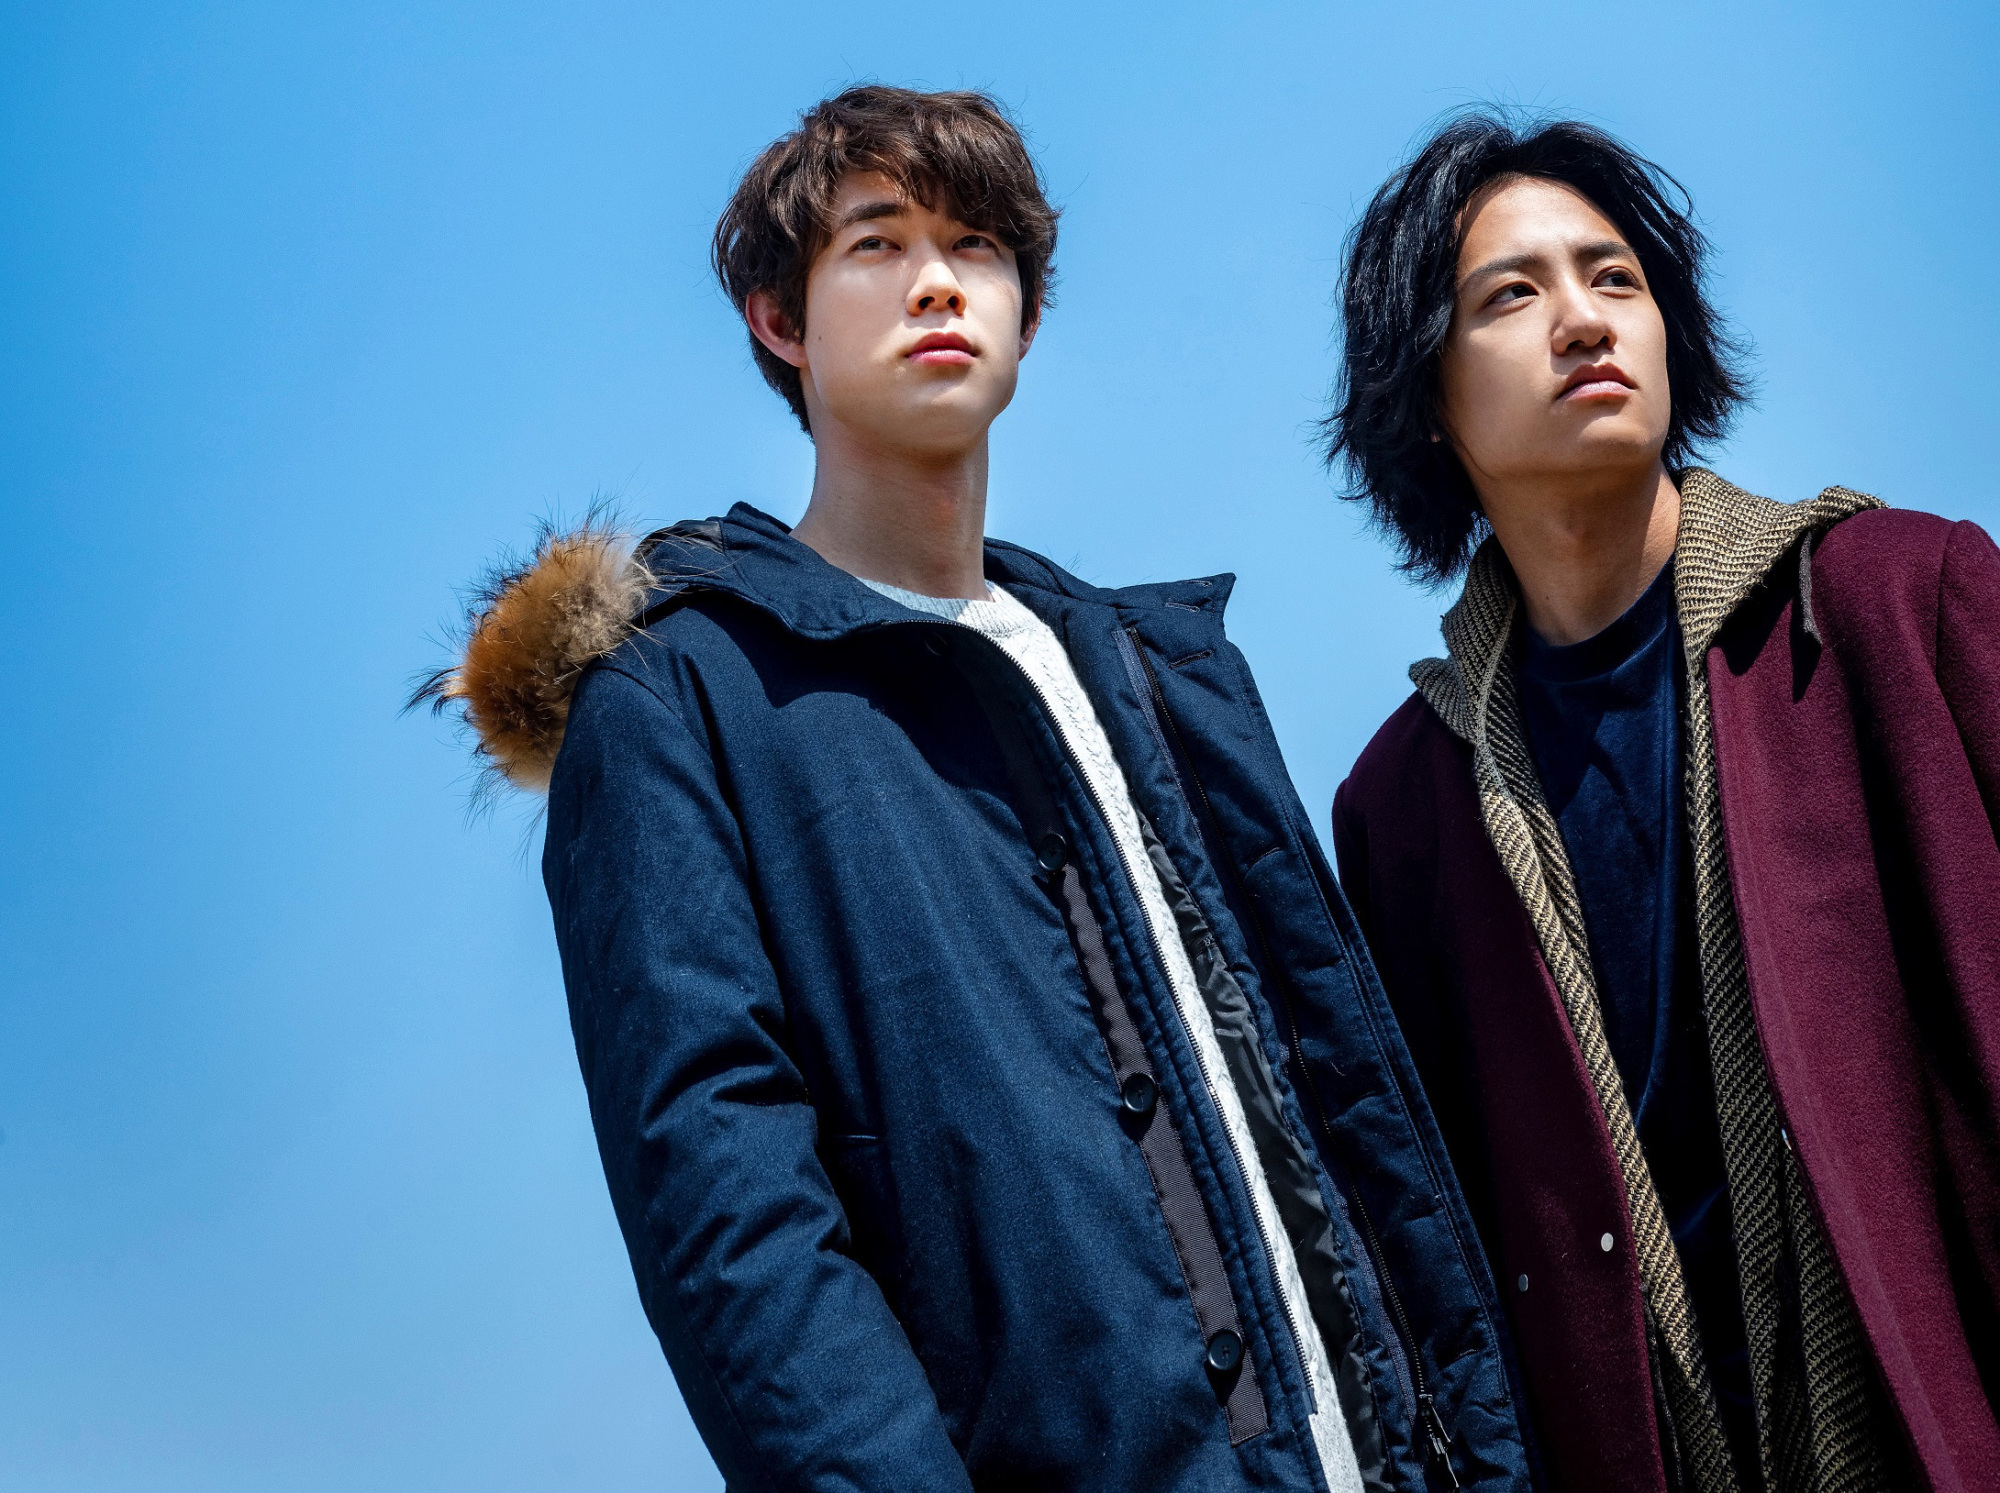 Rough roads: Hio Miyazawa (left) and Kisetsu Fujiwara star as lovers who split up and follow different paths in life in 'his.' | © 2020 'HIS' FILM PARTNERS